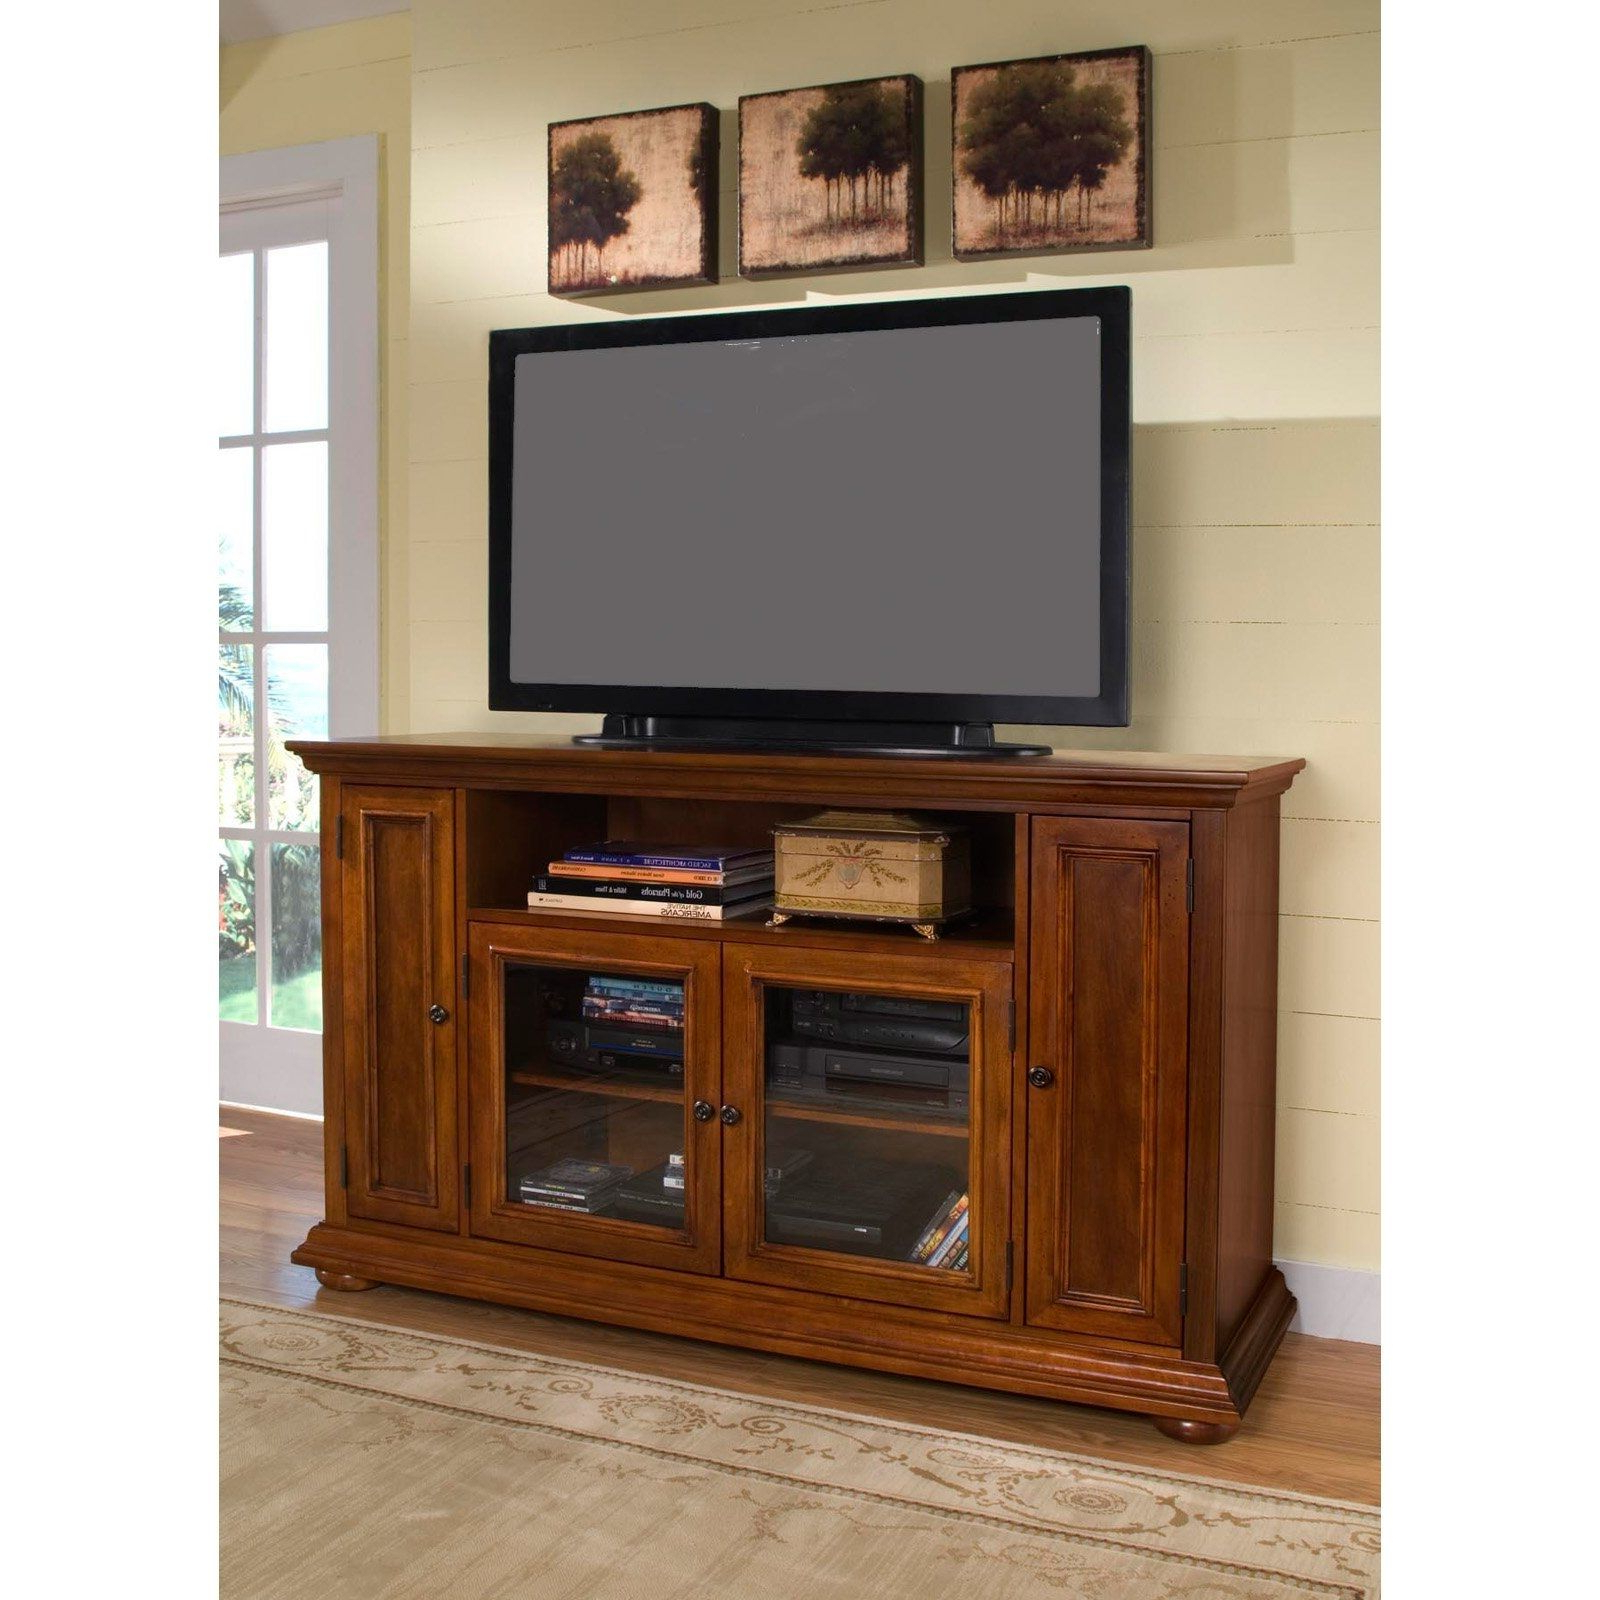 Recent Oak Tv Cabinets For Flat Screens In Corner Oak Tv Cabinets For Flat Screens With Doors (Gallery 4 of 20)